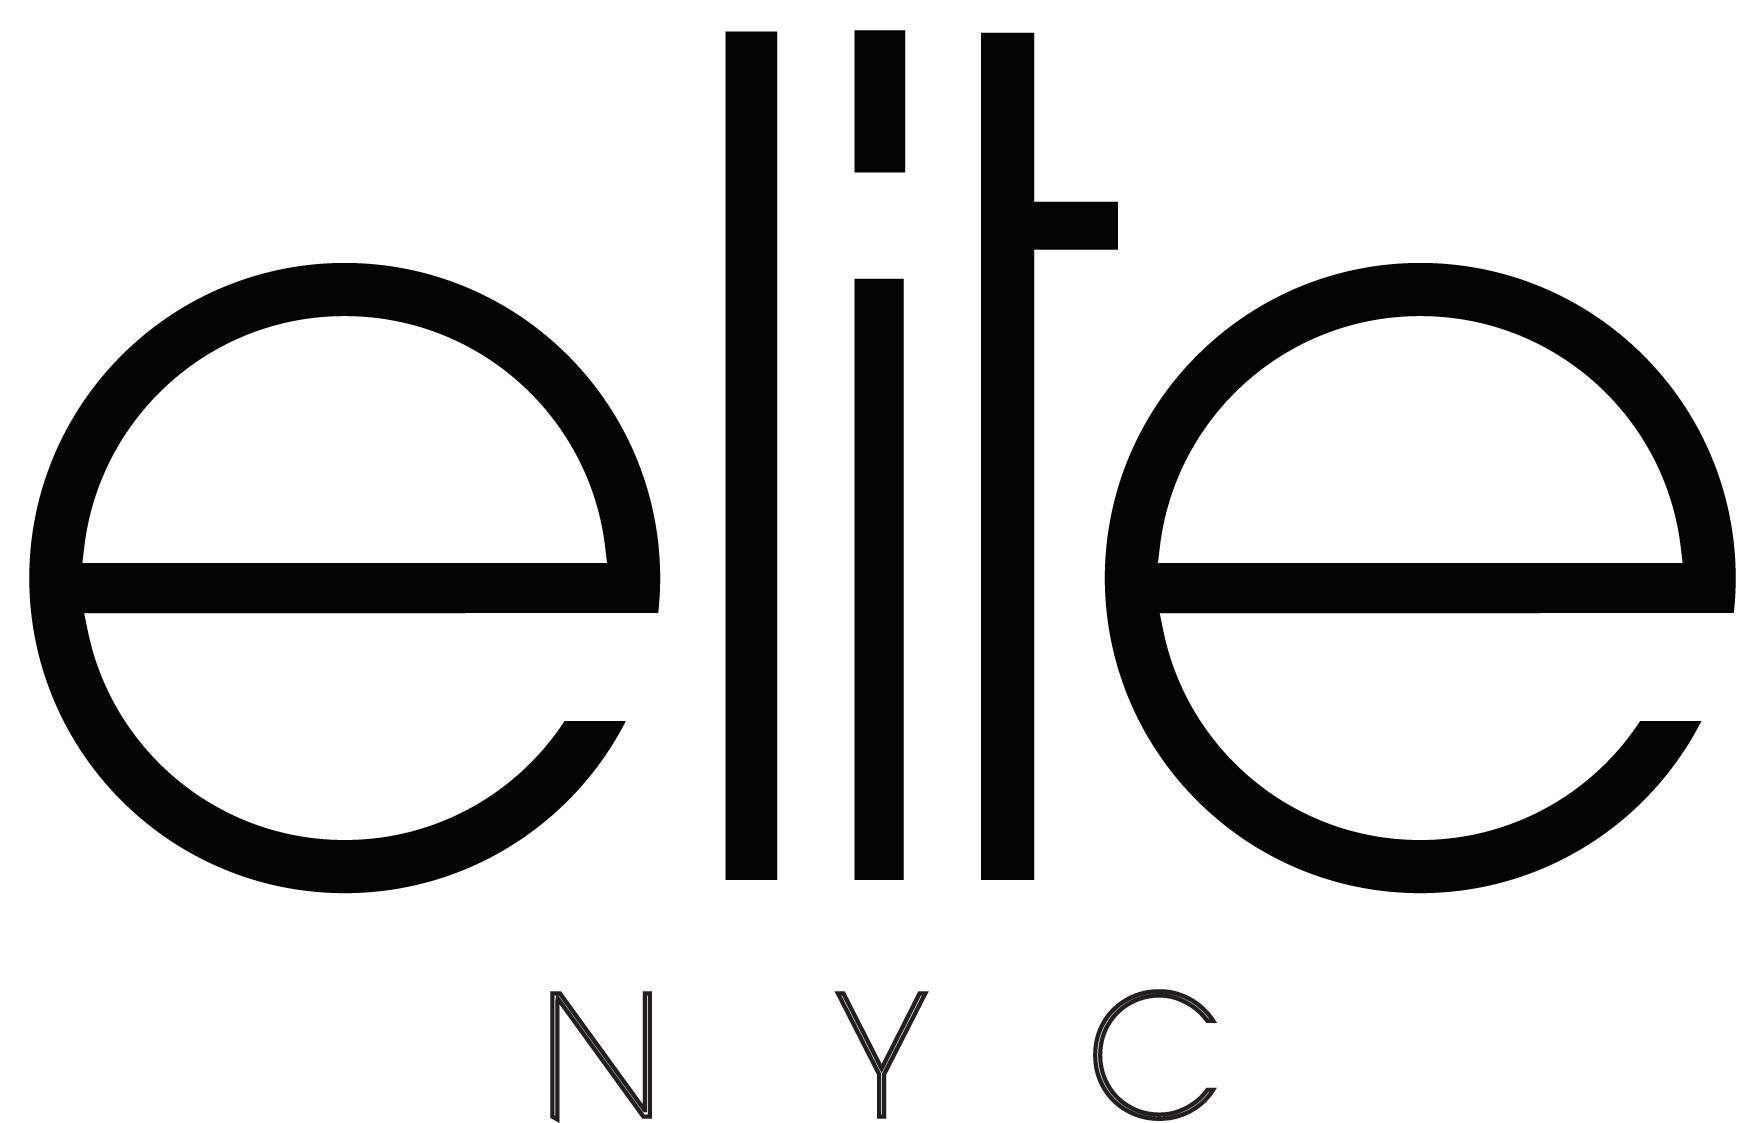 Elite dating services new york